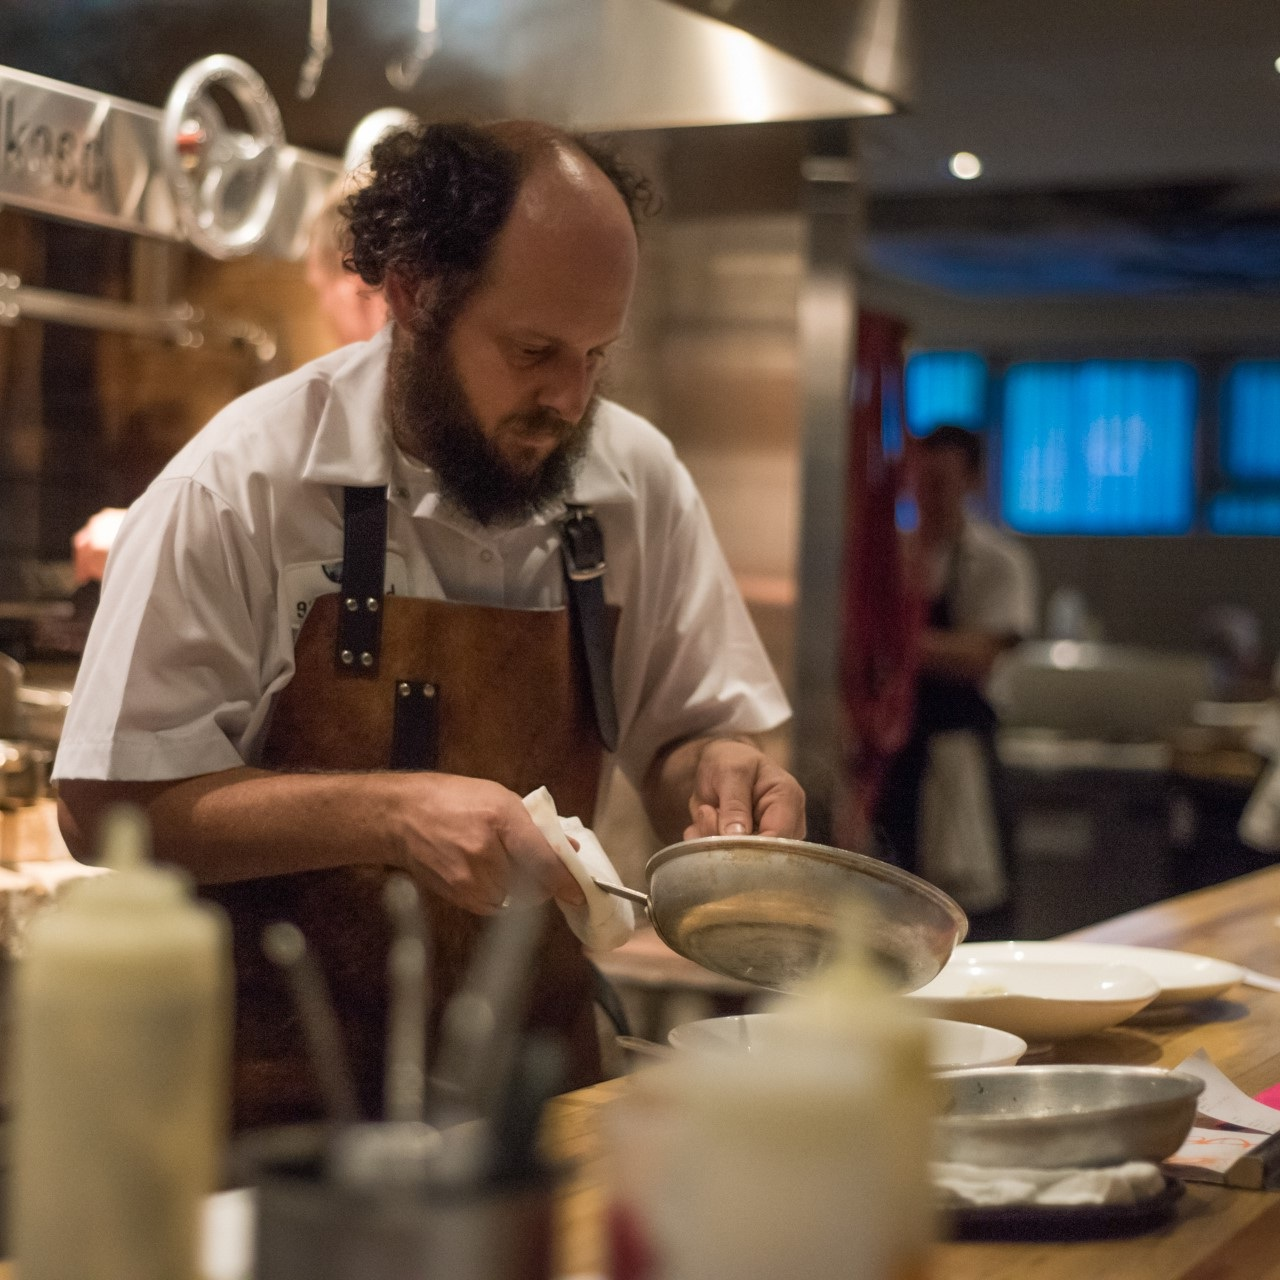 RYAN CRAWFORD - BACKHOUSENIAGARA ON THE LAKE, ONTARIORyan will be rescuing egg whites, garlic ends and peach tree trimmings to create Wood-Fired Mushrooms on Toast with Fried Egg white Mousse & Black Garlic